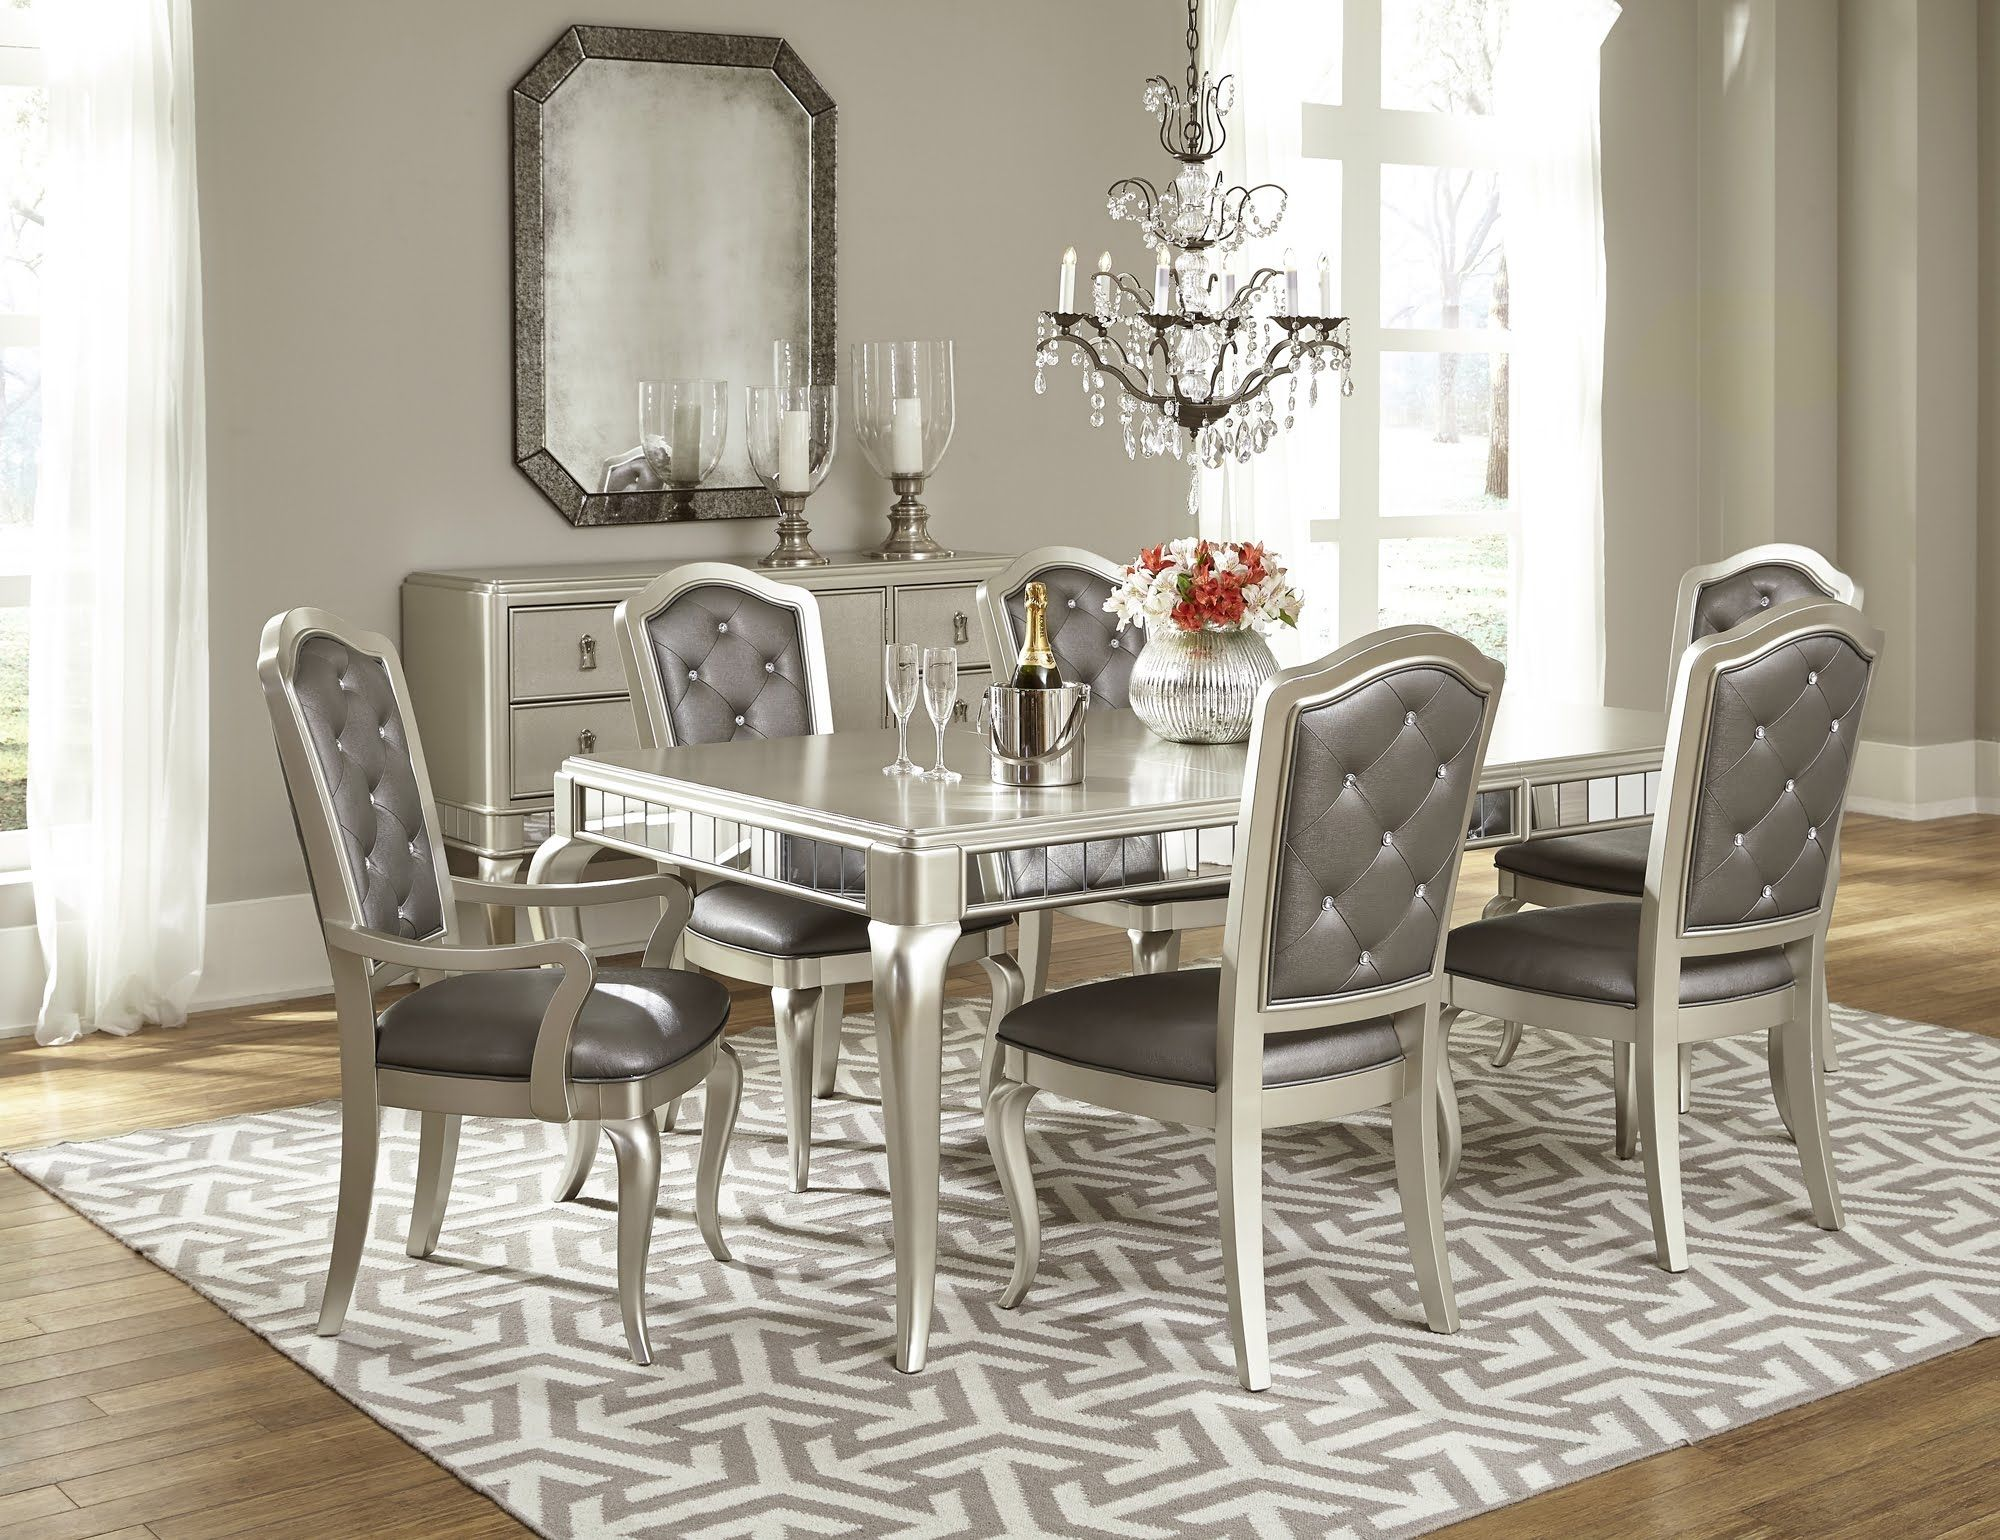 Dining Room Set Bobs Furniture